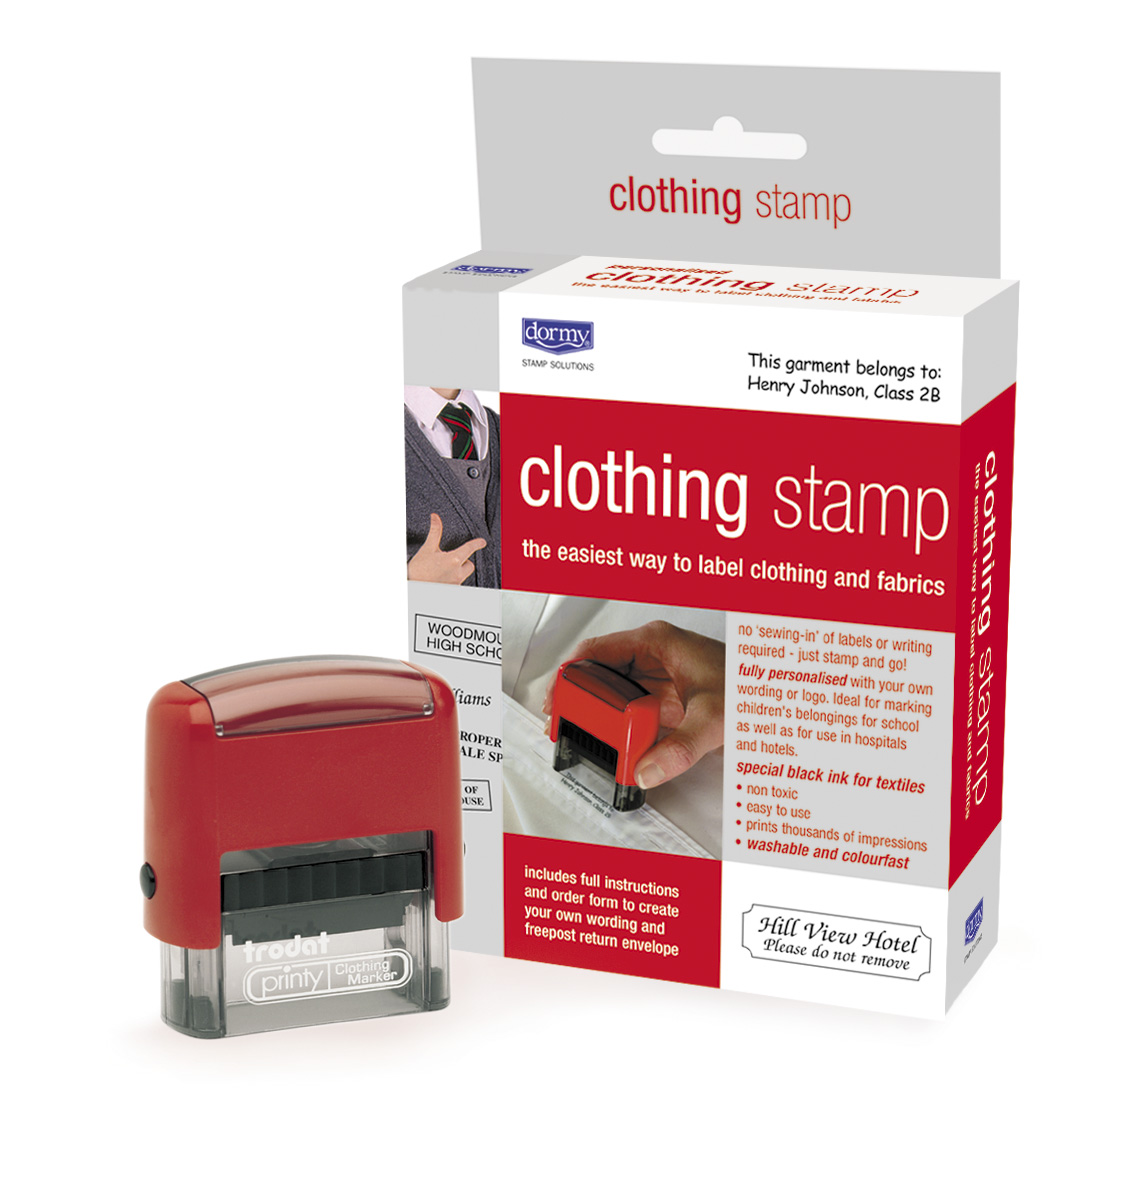 Dormy Clothing Stamp Box